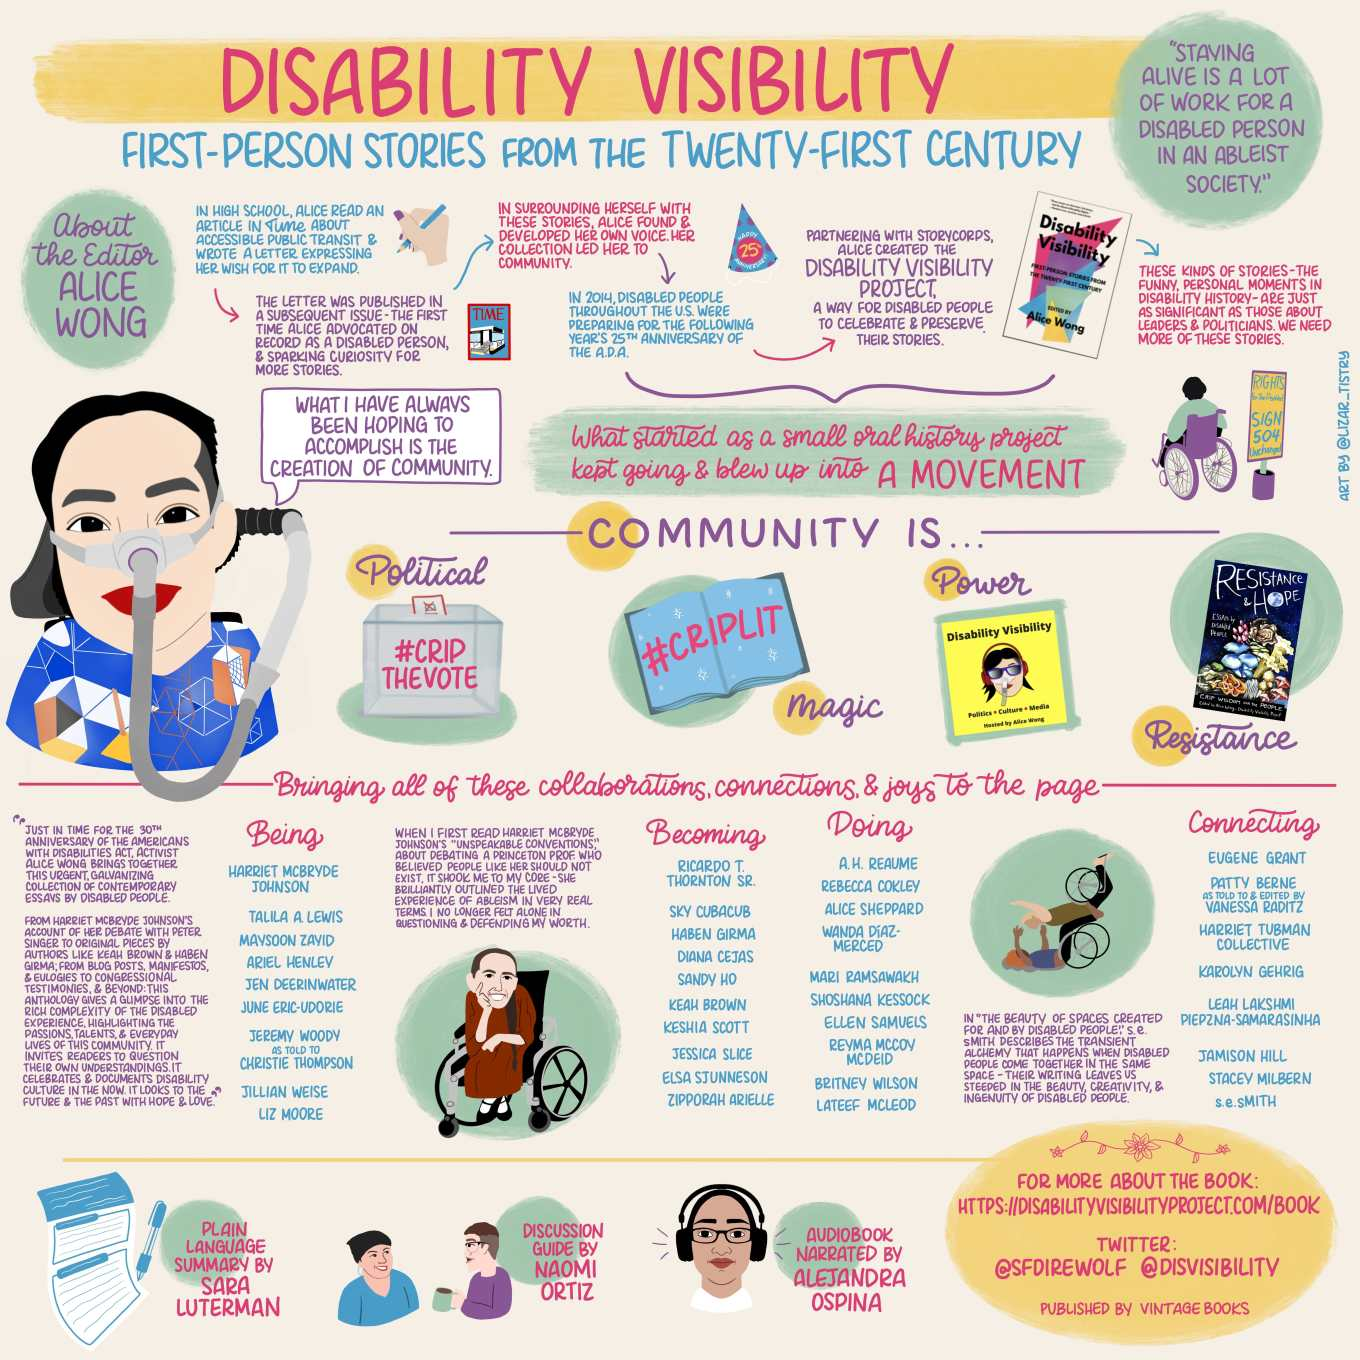 "Infographic titled ""Disability Visibility: First-Person Stories from the Twenty-First Century"" with a yellow, pink, turquoise, pastel green, and pastel purple color scheme. A green circle next to the title reads ""Staying alive is a lot of work for a disabled person in an ableist society."" Another green circle reads ""About the editor - Alice Wong"" is above a doodle of Alice Wong, an Asian American women in a power chair and a blue shirt with an organize, black, white and yellow geometric pattern, wearing a mask over her nose attached to a gray tube and bright red lip color; and a speech bubble reads ""What I have always been opening to accomplish is the creation of community."" Text reads ""In high school, Alice read an article in Time about accessible public transit and wrote a letter expressing her wish for it to expand"" with a doodle of a hand with a blue pencil and purple nails."" An arrow points to text reading ""The letter was published in a subsequent issue - the first time Alice advocated on record as a disabled person, and sparking curiosity for more stories"" with a doodle of a Time Magazine cover with a bus with a wheelchair ramp. Another arrow points to text reading ""In surrounding herself with these stories, Alice found and developed her own voice. Her collection led her to community"" and another arrow points to text reading ""In 2014, disabled people through the U.S. were preparing for the following year's 25th anniversary for the A.D.A"" and a doodle of a party hat that reads ""Happy 25th Anniversary."" Another arrow points to ""Partnering with Storycorps, Alice created the Disability Visibility Project, a way for disabled people to celebrate and preserve their stories"" with an image of the cover the ""Disability Visibility"" book. Another arrow points to ""These kinds of stores - the funny, personal moments in disability history - are just as significant as those about leaders and politicians. We need more of these stories."" A curly bracket points to text reading ""What started as a small oral history project kept going and blew up into A Movement"" with a doodle of a person in a purple wheelchair facing away from the reader and a sign in a cement bucket that reads ""Rights for the Disabled - Sign 504 Unchanged!"" A sub-header reads ""Community is..."" Text reads ""Political"" with a doodle of a ballot box with ""#CripTheVote"" written on it, ""Magic"" with a doodle of a blue book with white sparkles and ""#CripLit"" written on it, ""Power"" with a doodle of the yellow Disability Visibility podcast logo of Alice Wong, an East Asian woman with purple sunglasses, red headphones, and a mask over her nose attached to a gray tube, and ""Resistance"" with an image of the cover of ""Resistance and Hope: Essays by Disabled People"" (a dark blue cover with colorful fungi and the ""o"" in ""Hope"" is a moon, with addition text ""Crip Wisdom for the people""). Another sub-header reads ""Bringing all of these collaborations, connections, and joys to the page."" A blurb of text reads ""Just in time for the 30th anniversary of the Americans with Disabilities Act, activist Alice Wong brings together this urgent, galvanizing collection of contemporary essays by disabled people. For Harriet McBryde Johnson's account of her debate with Peter Singer to original pieces by authors like Keah Brown and Haben Girma; from blog posts, manifestos, and eulogies to congressional testimonies, and beyond: this anthology gives a glimpse into the rich complex city of the disabled experience, highlighting the passions, talents, and everyday lives of this community. It invites their own understandings. It celebrates and documents disability culture in the now. It looks to the future and the past with hope and love."" A column of text titled ""Being"" lists contributing authors ""Harriet McBryde Johnson, Tallis A. Lewis, Maysoon Zayid, Ariel Henley, Jen Deerinwater, June Eric-Udorie, Jeremy Woody as told to Christie Thompson, Jillian Weise, Liz Moore."" Text reads ""When I first read Harriet McBryde Johnson's 'Unspeakable Conventions,' about debating a Princeton prof. who believed people like her should not exist, it shook me to my core - she brilliantly outlined the lived experience of ableism in very real terms. I no longer felt alone in questioning and defending my work."" There is a doodle of Harriet McBryde Johnson, a light-skinned woman with long braid of brown hair, in a wheel chair wearing a red dress and smiling toward the camera. Another column titled ""Becoming"" lists authors ""Ricardo T. Thornton Sr., Sky Cubacub, Haben Girma, Diana Cejas, Sandy Ho, Keah Brown, Keshia Scott, Jessica Slice, Elsa Sjunneson, Zipporah Arielle."" Another column titled ""Doing"" lists authors ""A. H. Reaume, Rebecca Cokley, Alice Sheppard, Wanda Diaz-Merced, Mari Ramsawakh, Shoshana Kessock, Ellen Samuels, Reyna McCoy McDeid, Britney Wilson, Lateef Mcleod."" Text reads ""In 'The Beauty of Spaces Created For and By Disabled People,' s. e. smith describes the transient alchemy that happens when disabled people come together in the same space - their writing leaves us steeped in the beauty, creativity, and ingenuity of disabled people. There is a doodle of a person with orange hair and purple shirt in a wheelchair on their back with their arms extended, balancing another person on their legs, the second person is in a wheelchair and wears a green shirt with their arms extended. A fourth column titled ""Connecting"" lists authors ""Eugene Grant, Patty Berne as told to and edited by Vanessa Raditz, Harriet Tubman Collective, Karolyn Gehrig, Leah Lakshmi Piepzna-Samarasinha, Jamison Hill, Stacey Milbern, s. e. smith."" A bottom section has text that reads ""Plain language summary by Sara Luterman"" with a doodle of a piece of paper with blue text and design and a blue pen; text reading ""Discussion guide by Naomi Ortiz"" with a doodle of two people talking, on with light skin wearing a black bandana and blue shirt, the other with light skin, short brown hair, and glasses wearing purple shirt and holding a green mug; and text reading ""Audiobook narrated by Alejandra Ospina"" with a doodle of Alejandra, a light-skinned Latina woman with glasses and headphones. Final text in a yellow circle with a doodle of a flower at the top reads ""For more about the book: https://disabilityvisibilityproject.com/book""; ""Twitter: @SFDireWolf @DisVisiblity""; and ""Published by Vintage Books."" On the far right side of the image in small text reads ""art by @lizar_tistry."""